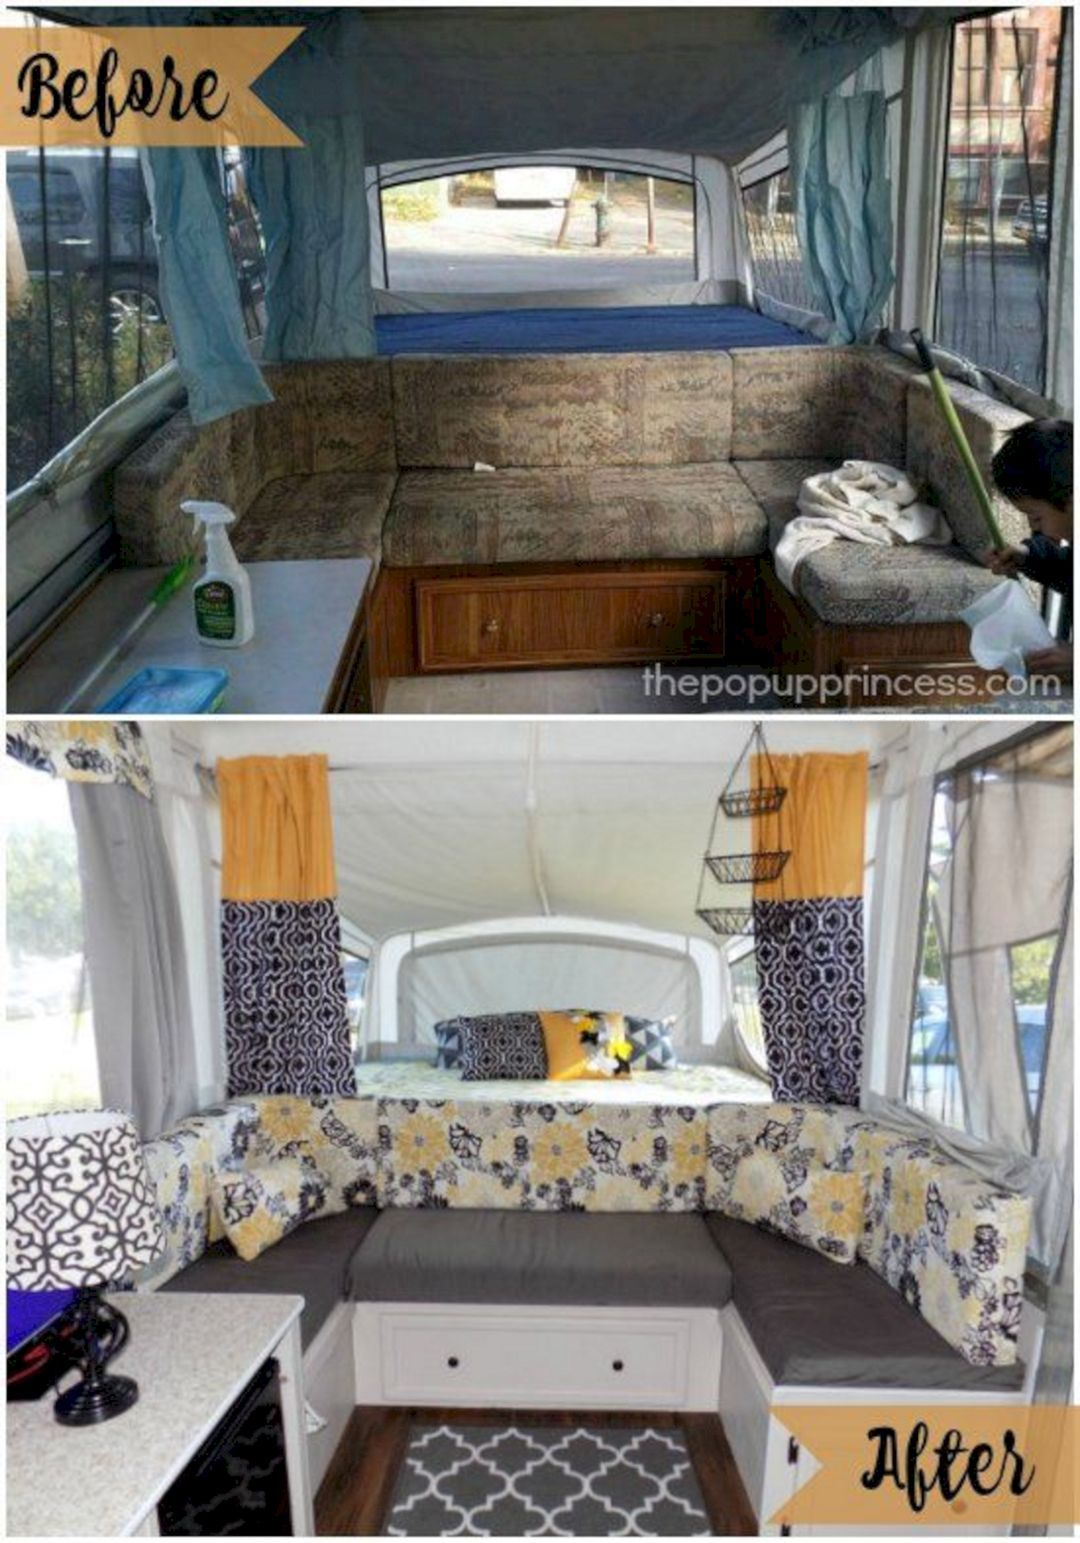 42+ Amazing RV Camper Makeover Ideas Before And After Collections ...